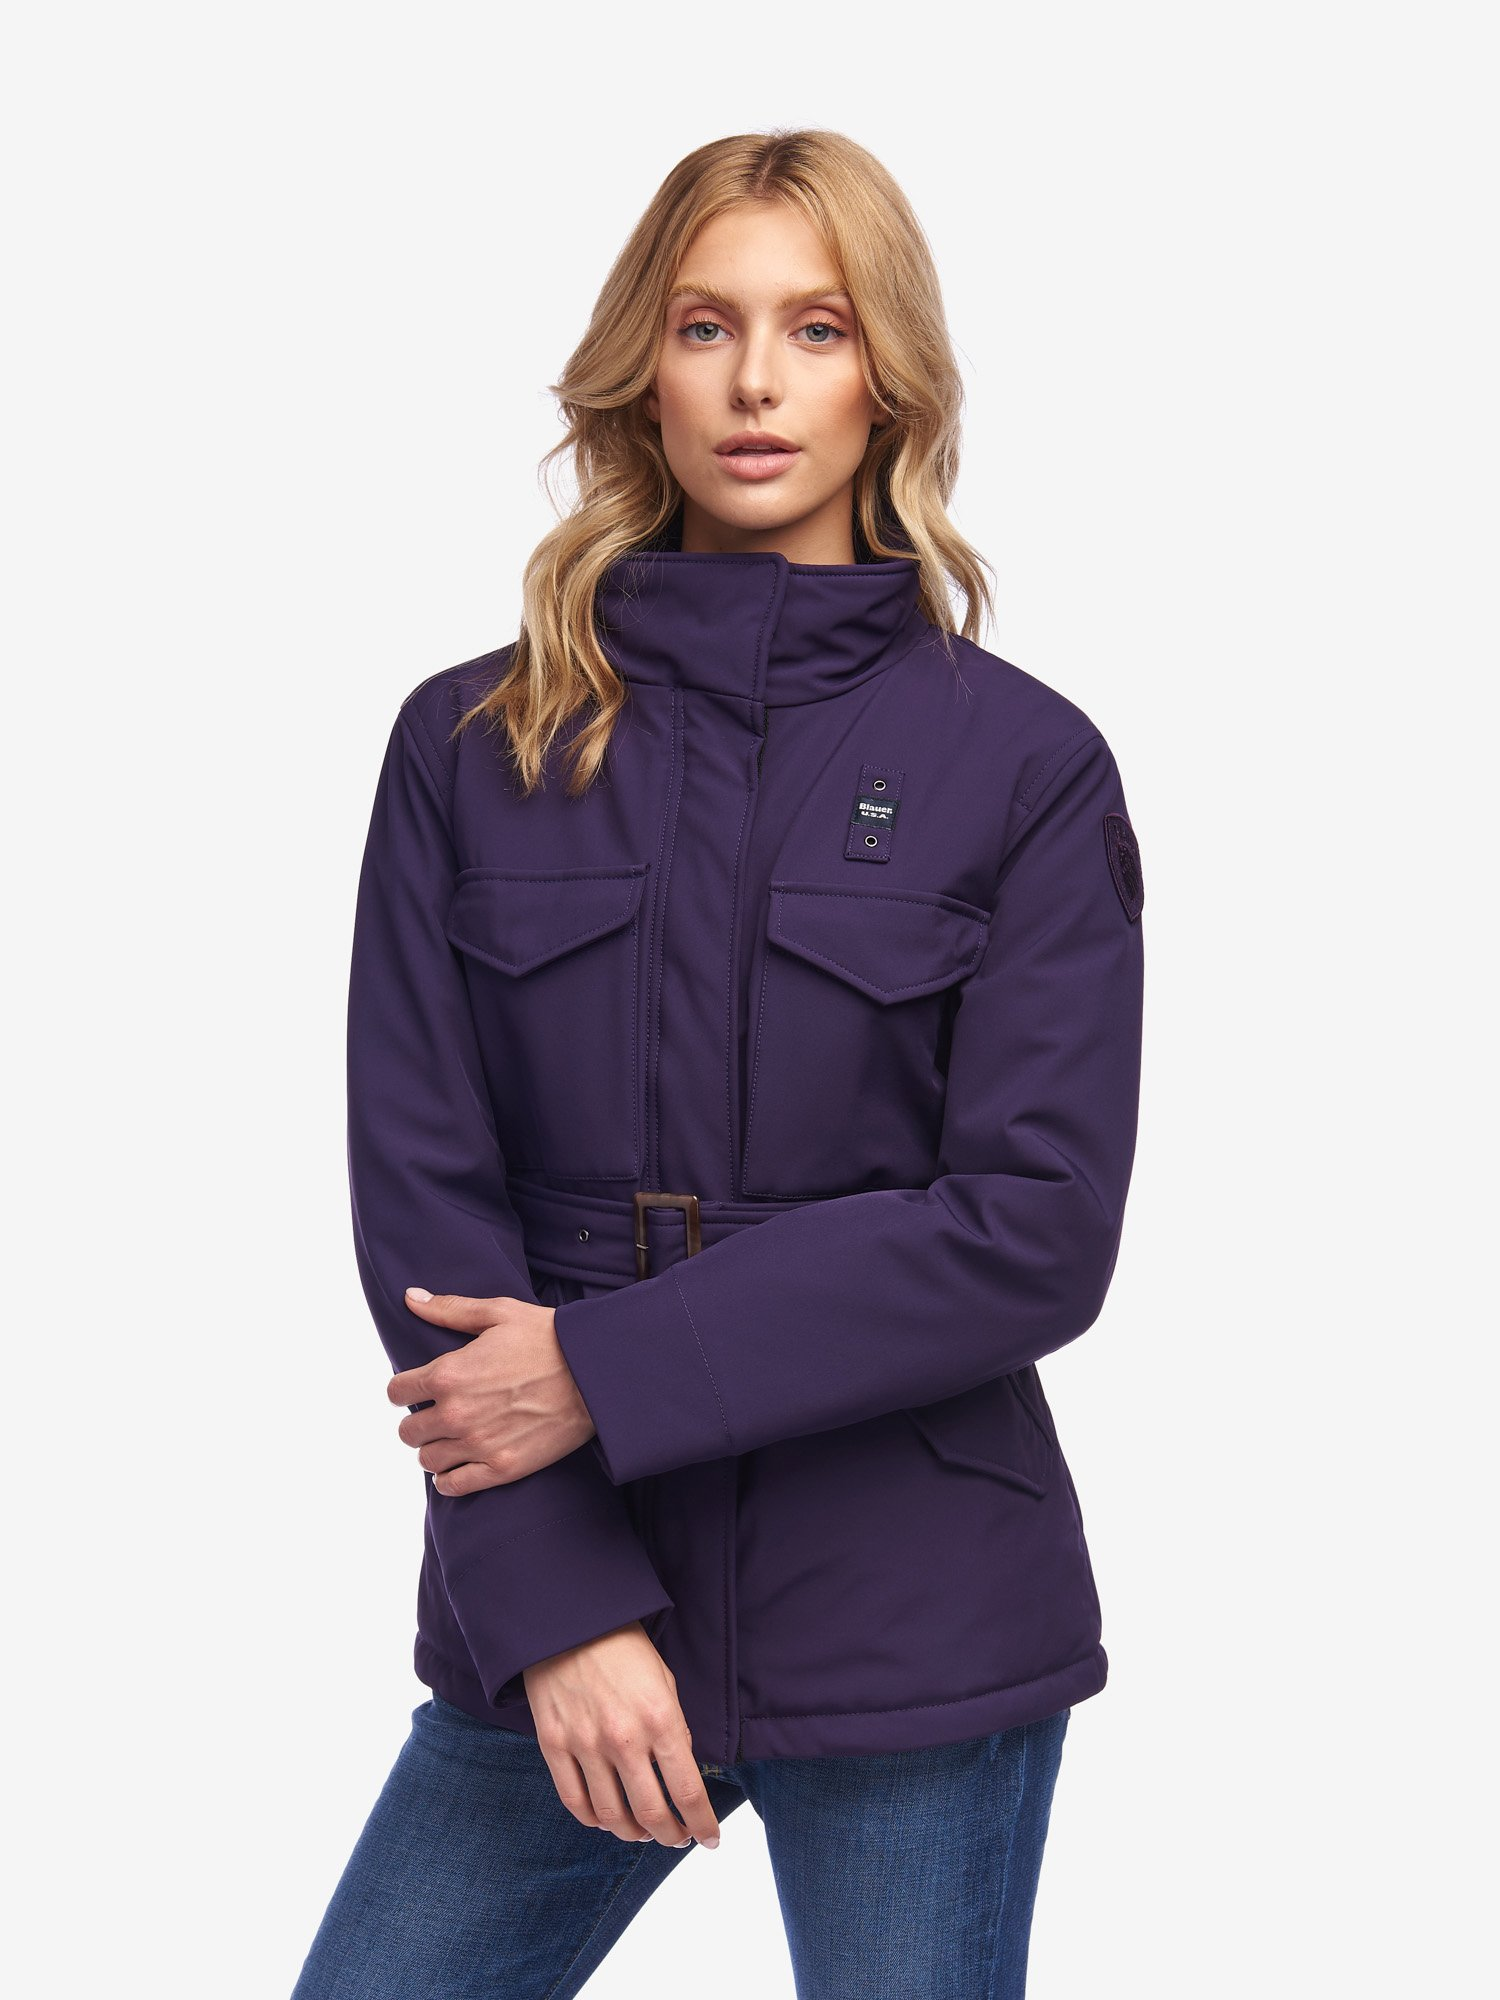 ROSE PADDED JACKET WITH BELT - Blauer